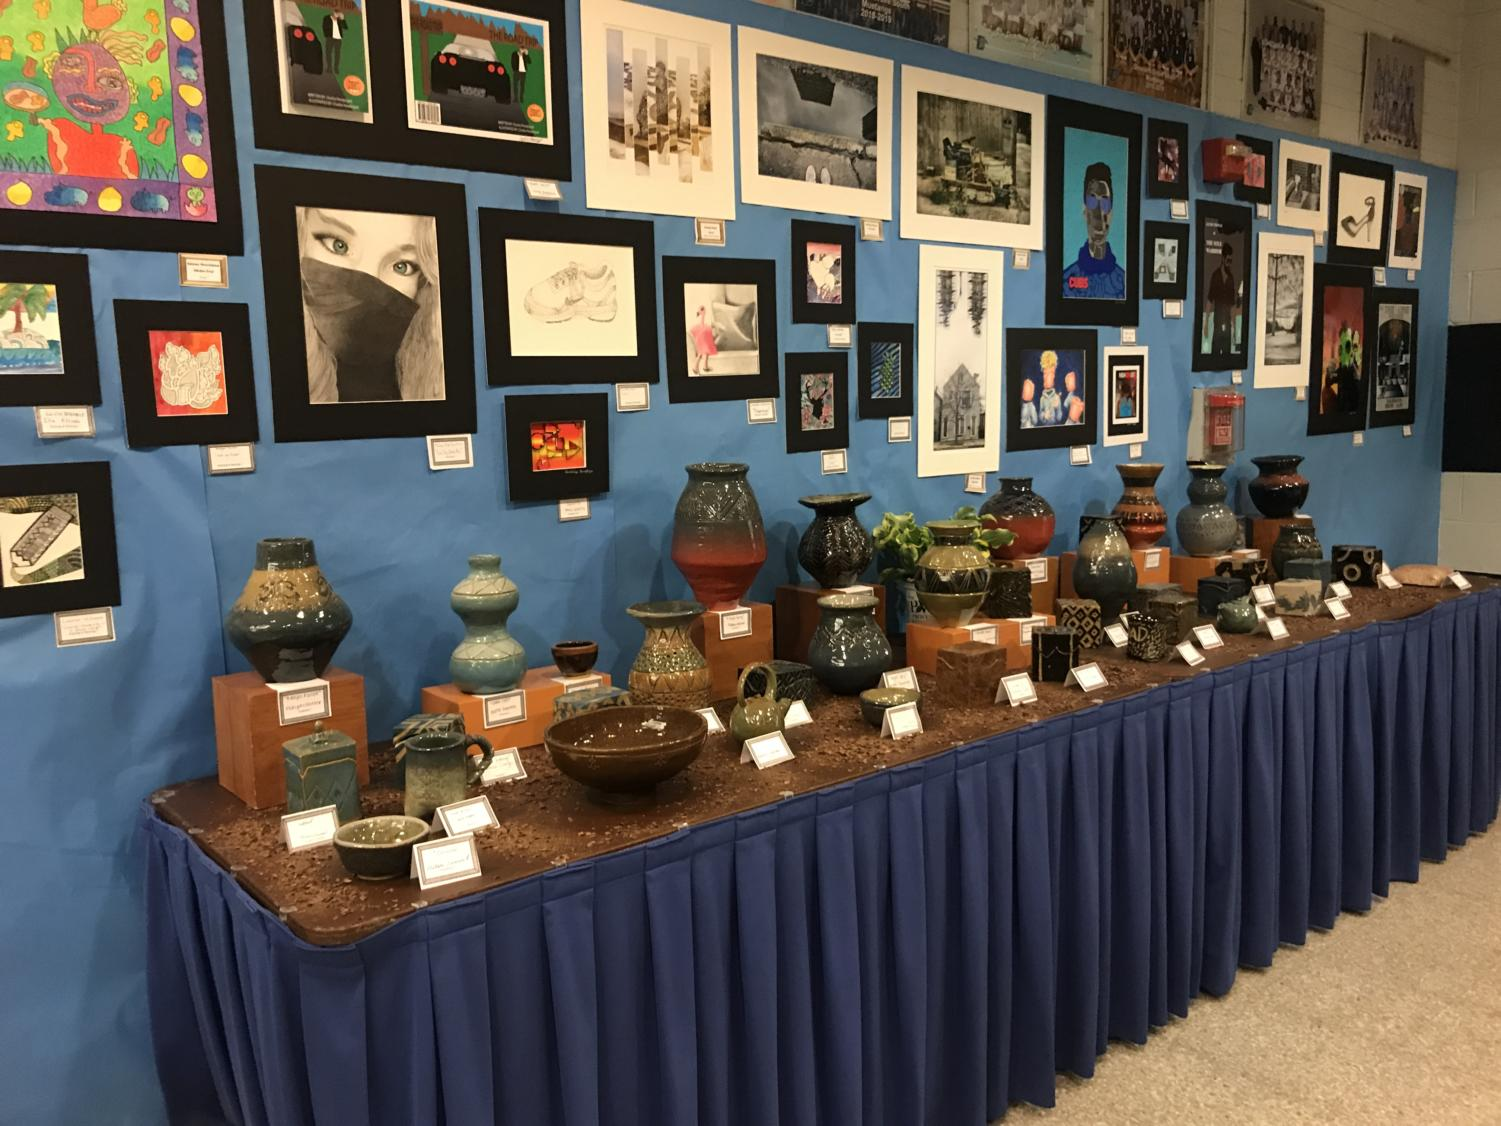 Underclassman%27s+pottery+and+artwork+displayed+on+the+tables+and+walls.+